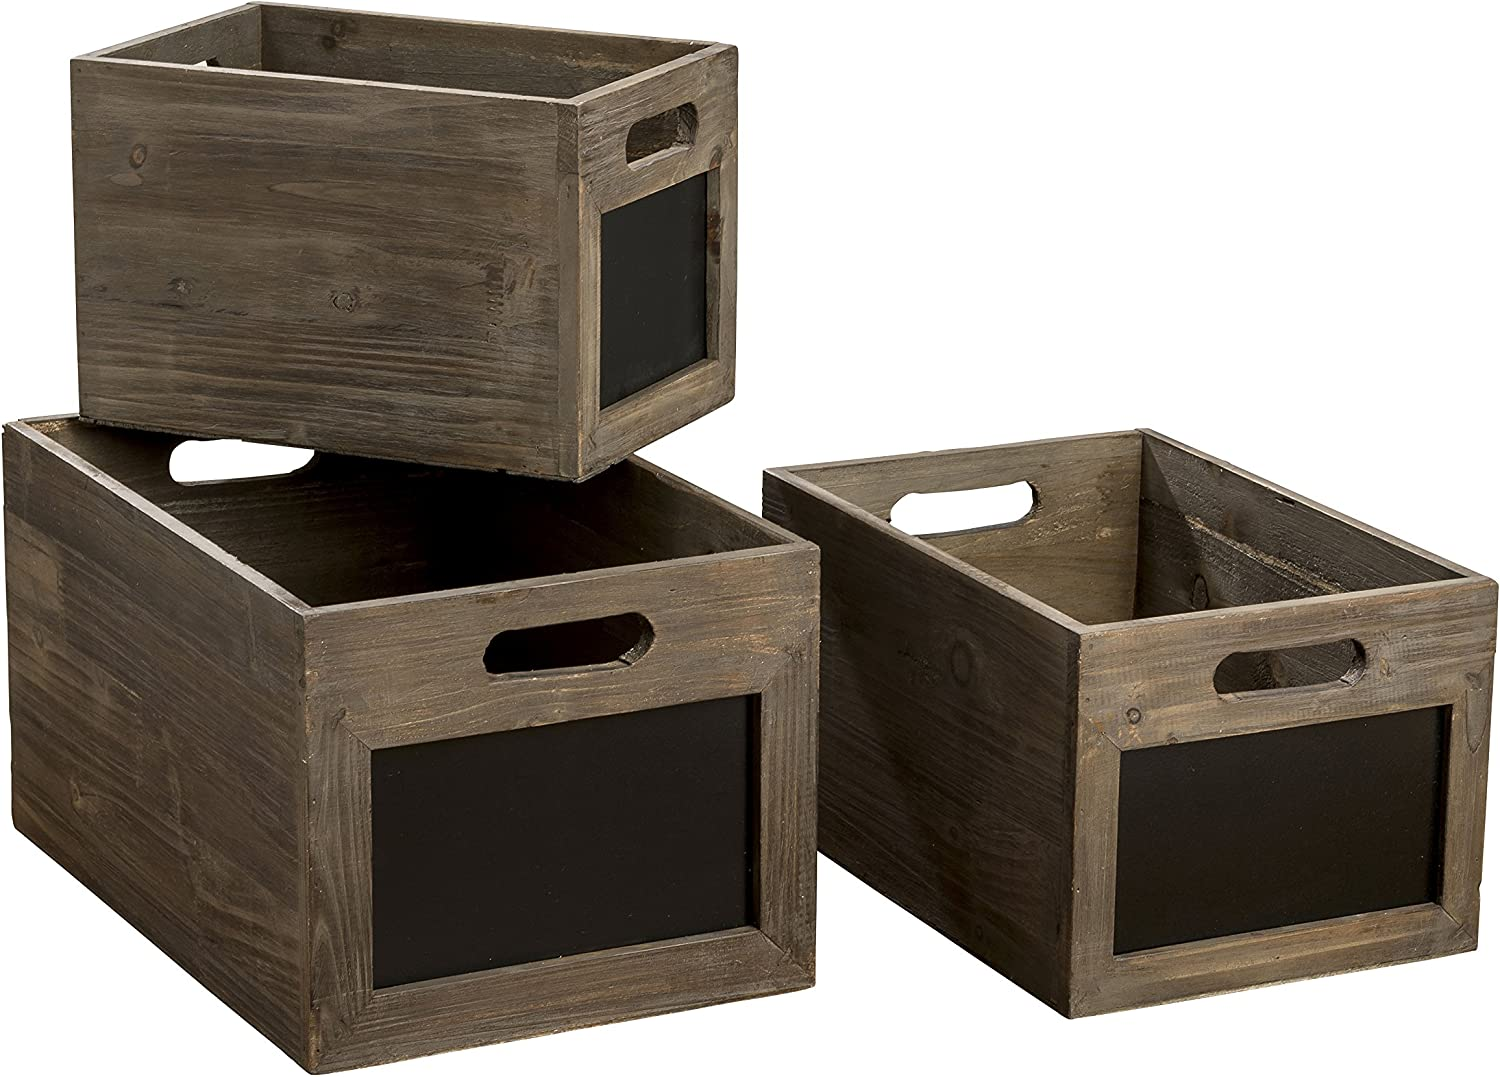 Easy Label Chalkboard Crates, Essential Home Organizers, Boxes, Set of 3, Sustainable Fir, Nesting Rectangles, 15, 12, and 10 3 4 Inches Long, Storage For Files, Toys, Clothes, Magazines,and More